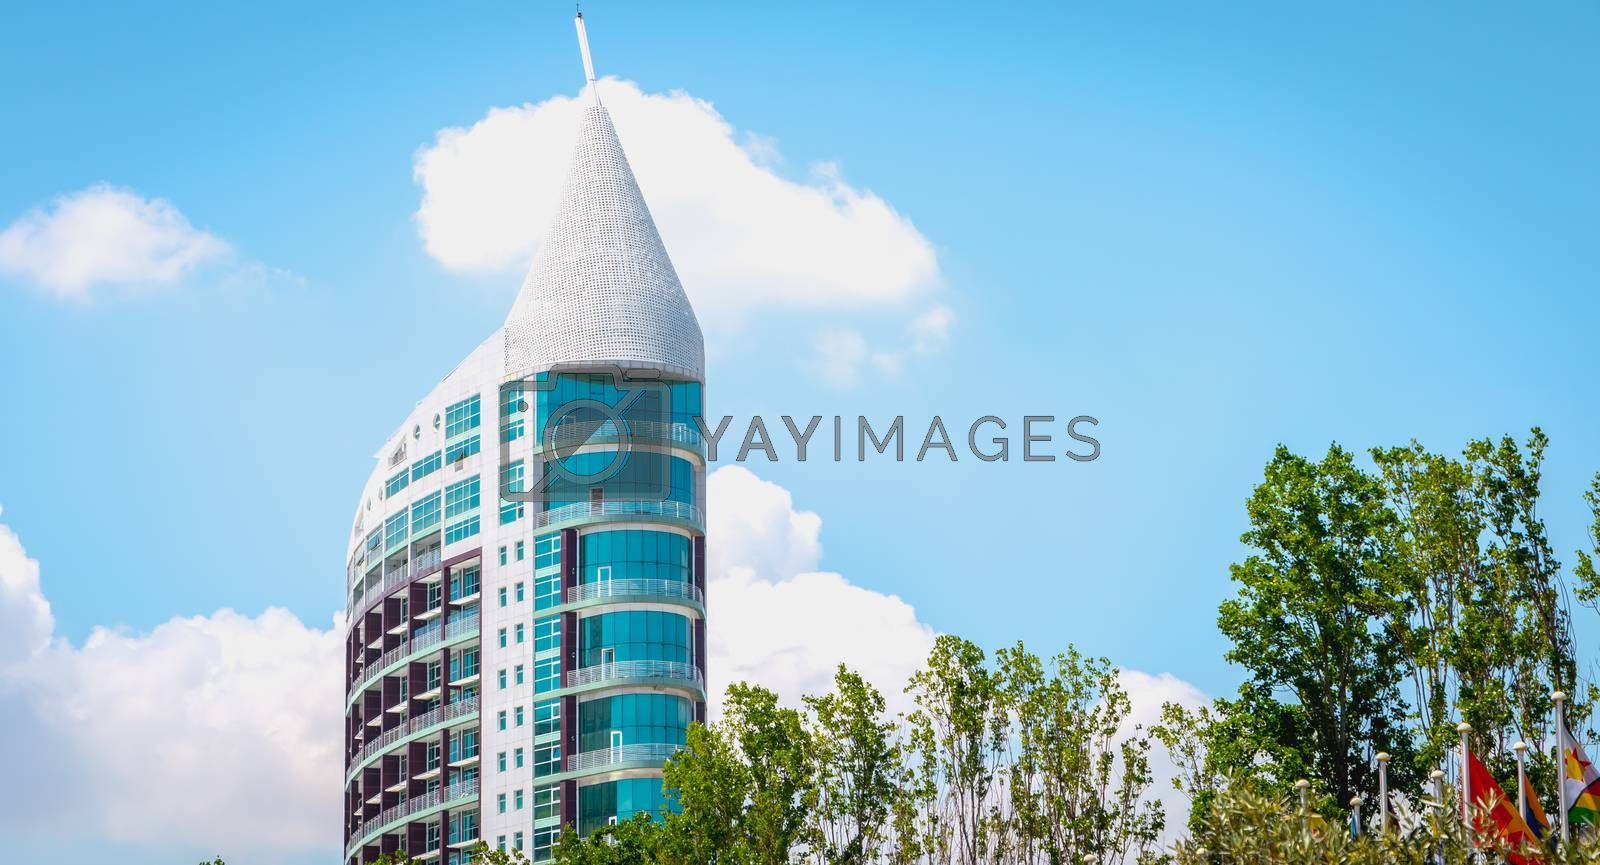 Lisbon, Portugal - May 7, 2018: Architectural detail of Sao Gabriel tower, at Parque das Nacoes (Park of Nations) in Lisbon on a spring day